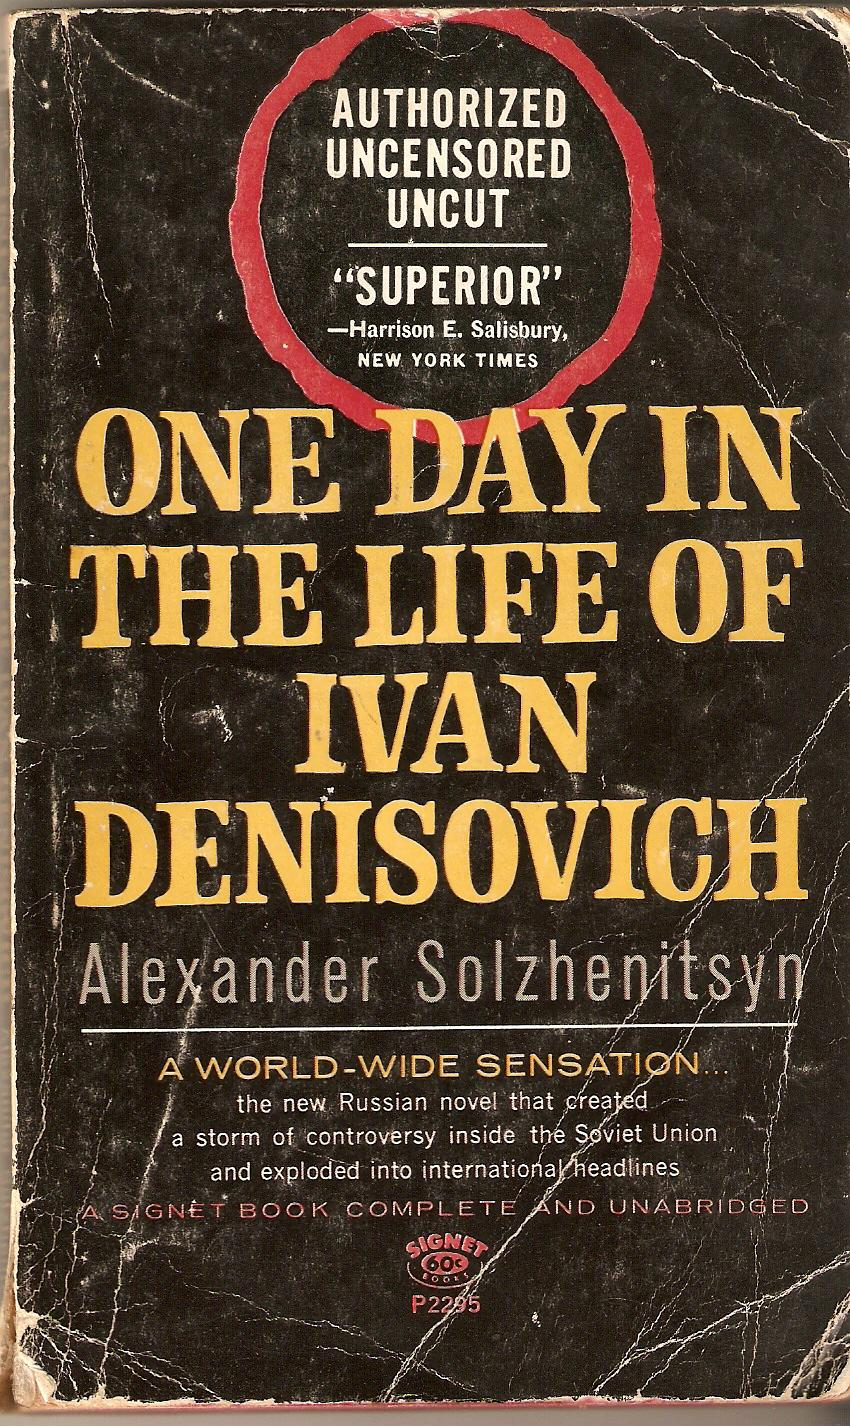 a comparison between the myth of sisyphus by albert camus and english u s paperback cover of one day in the life of ivan denisovich by aleksandr